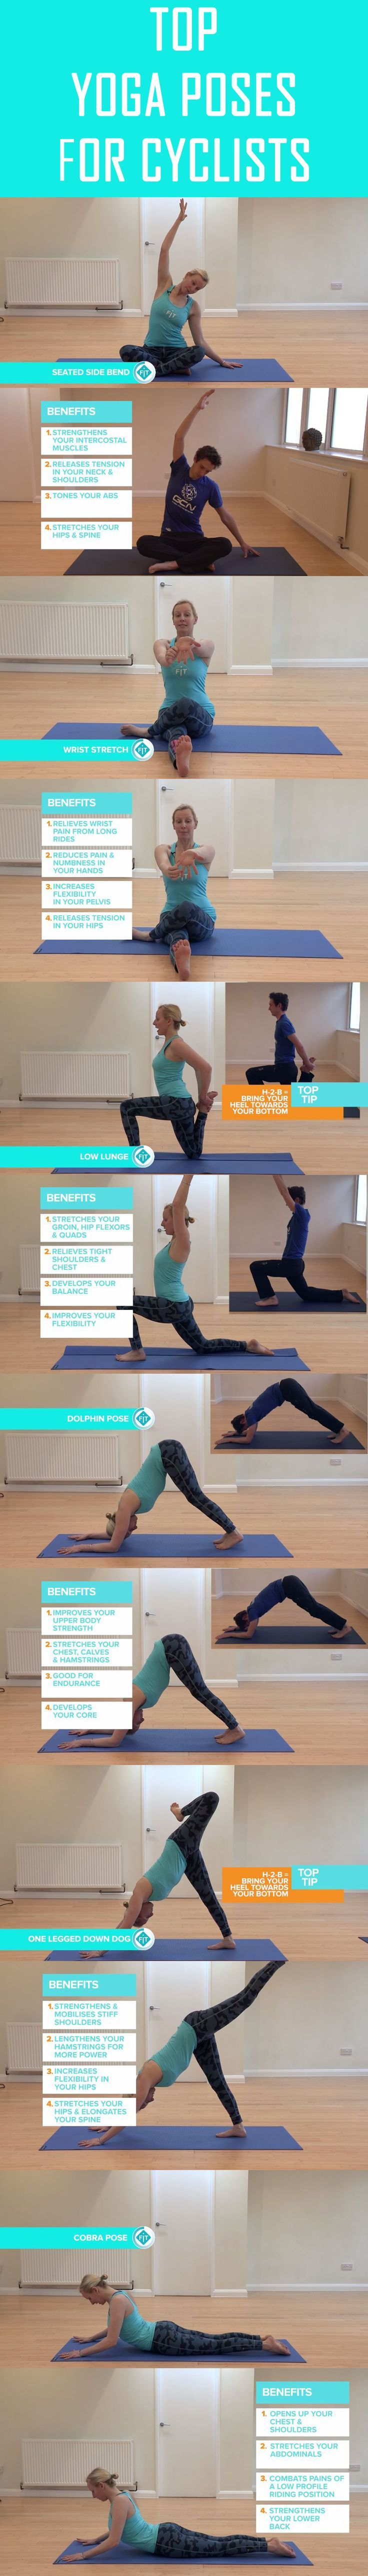 Yoga poses for every cyclist should be doing.